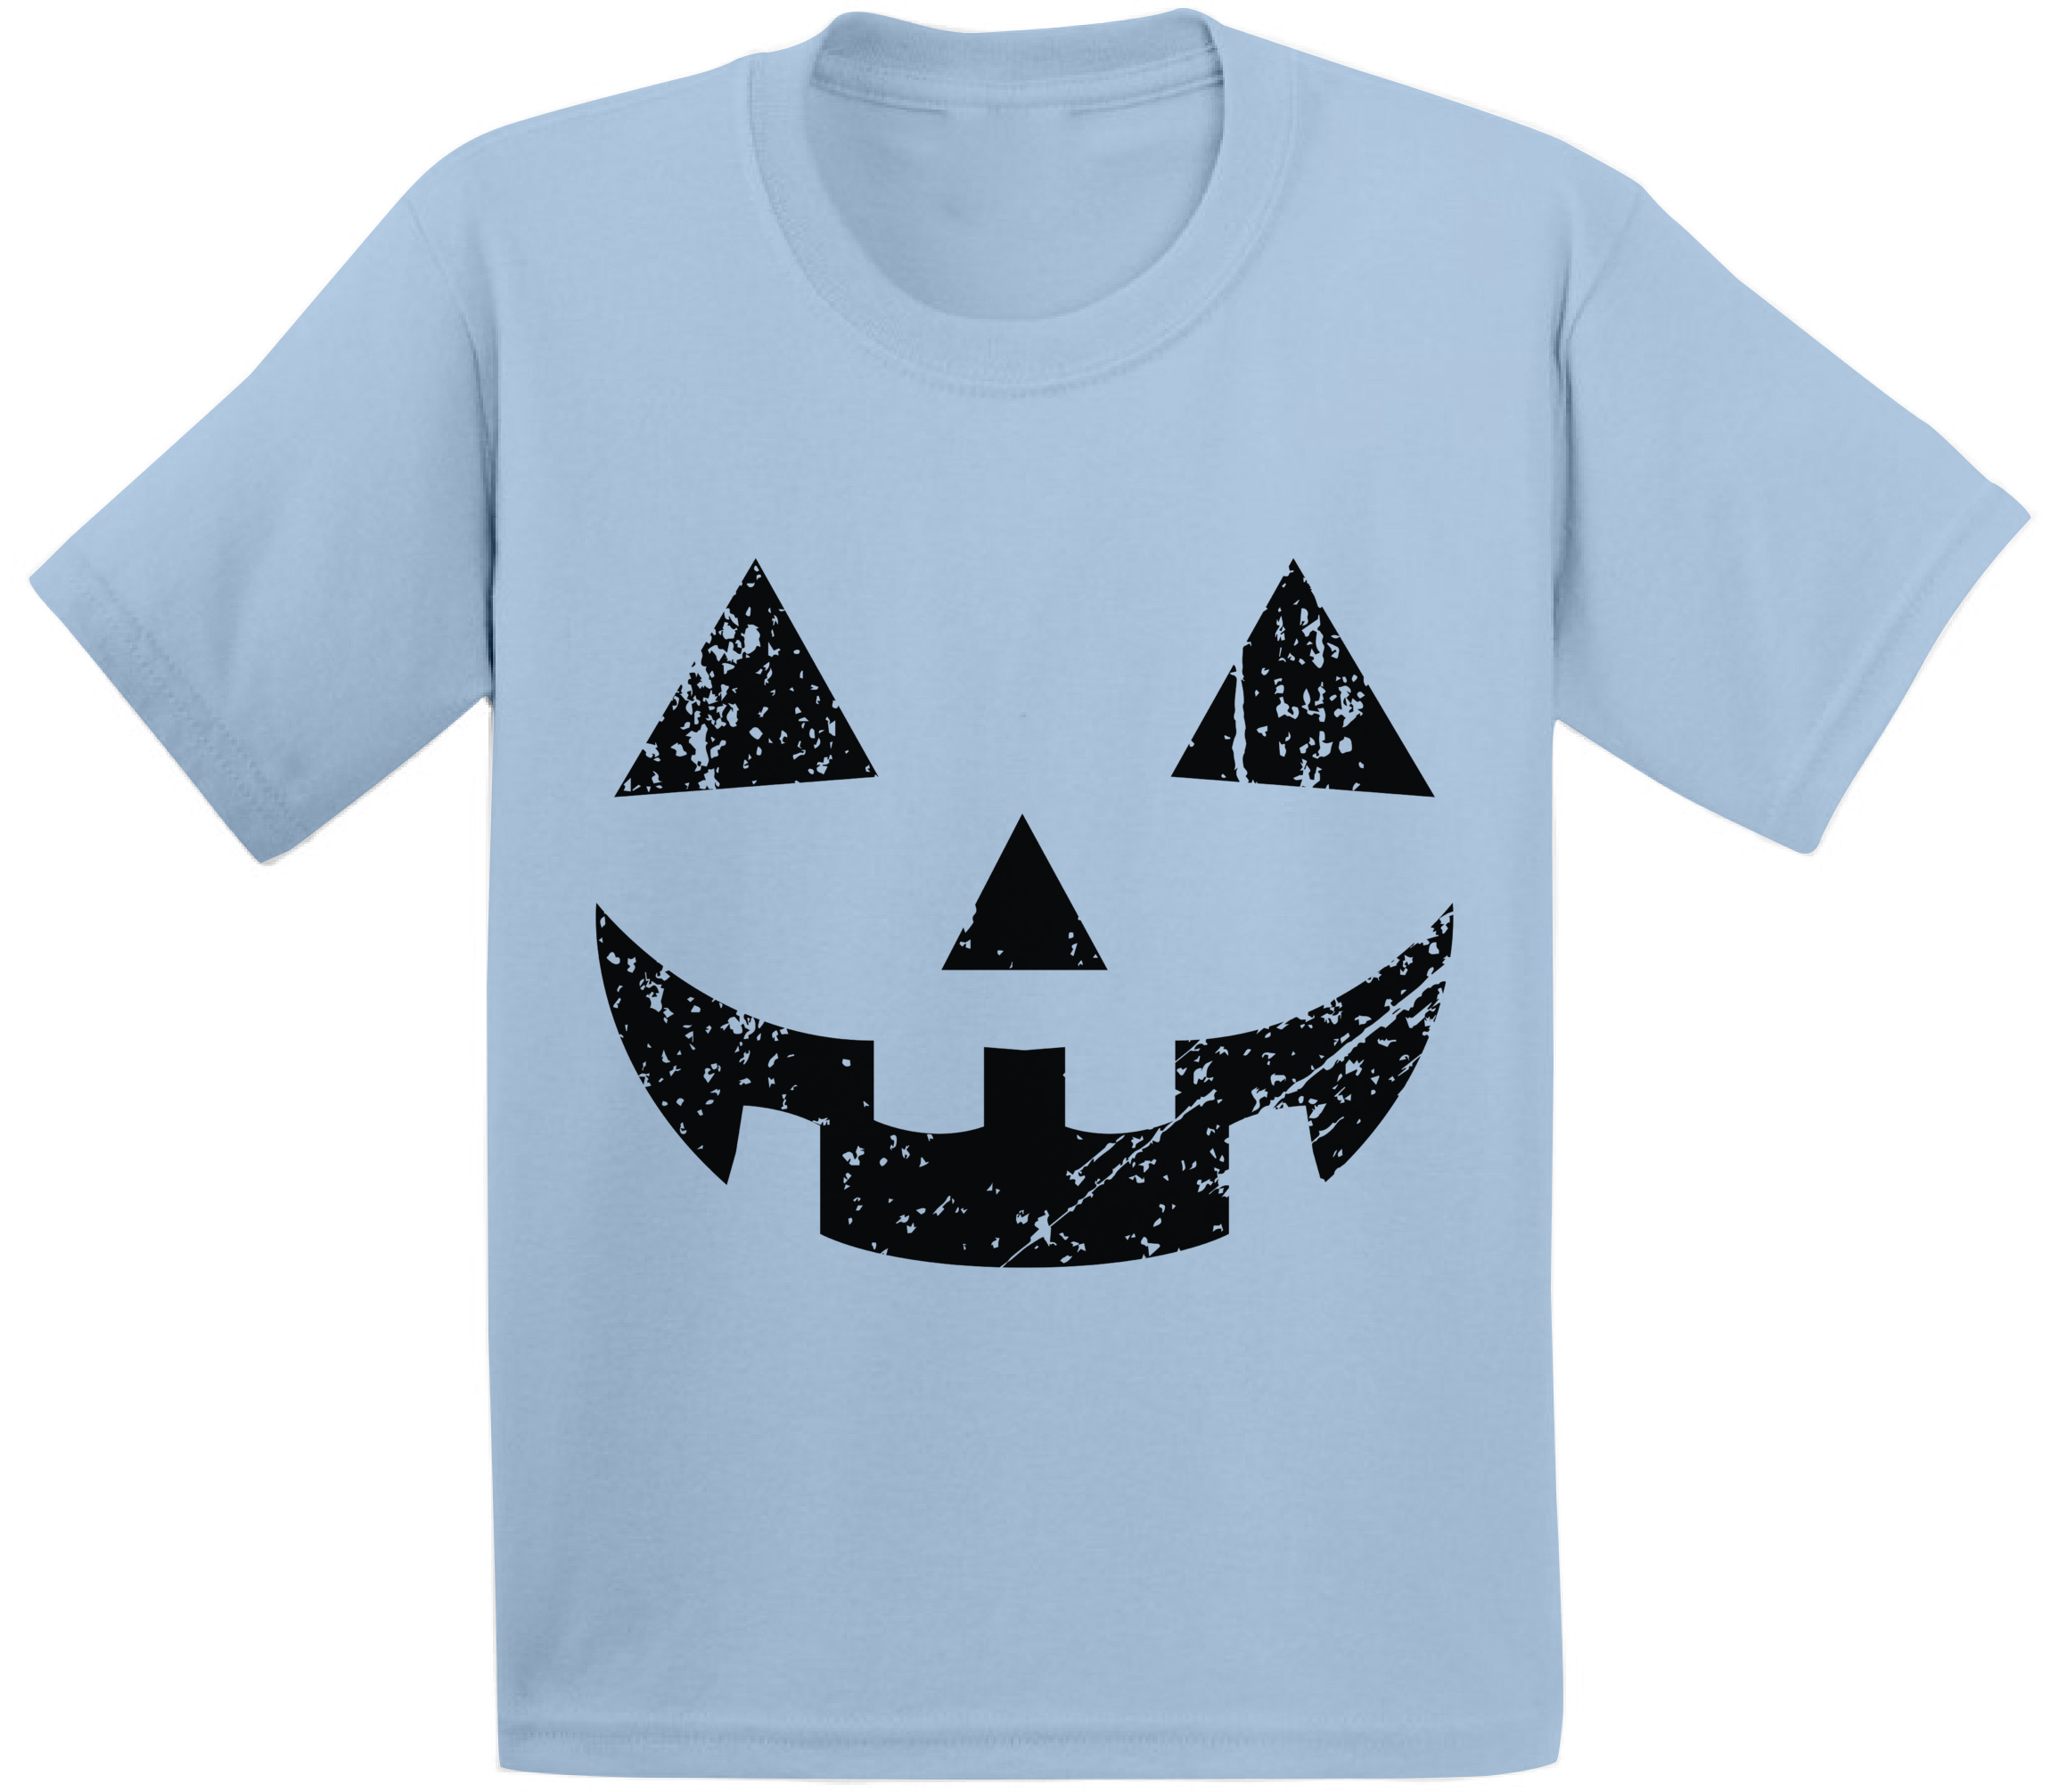 jack o' halloween pumpkin toddler shirts girl boy infant shirts easy